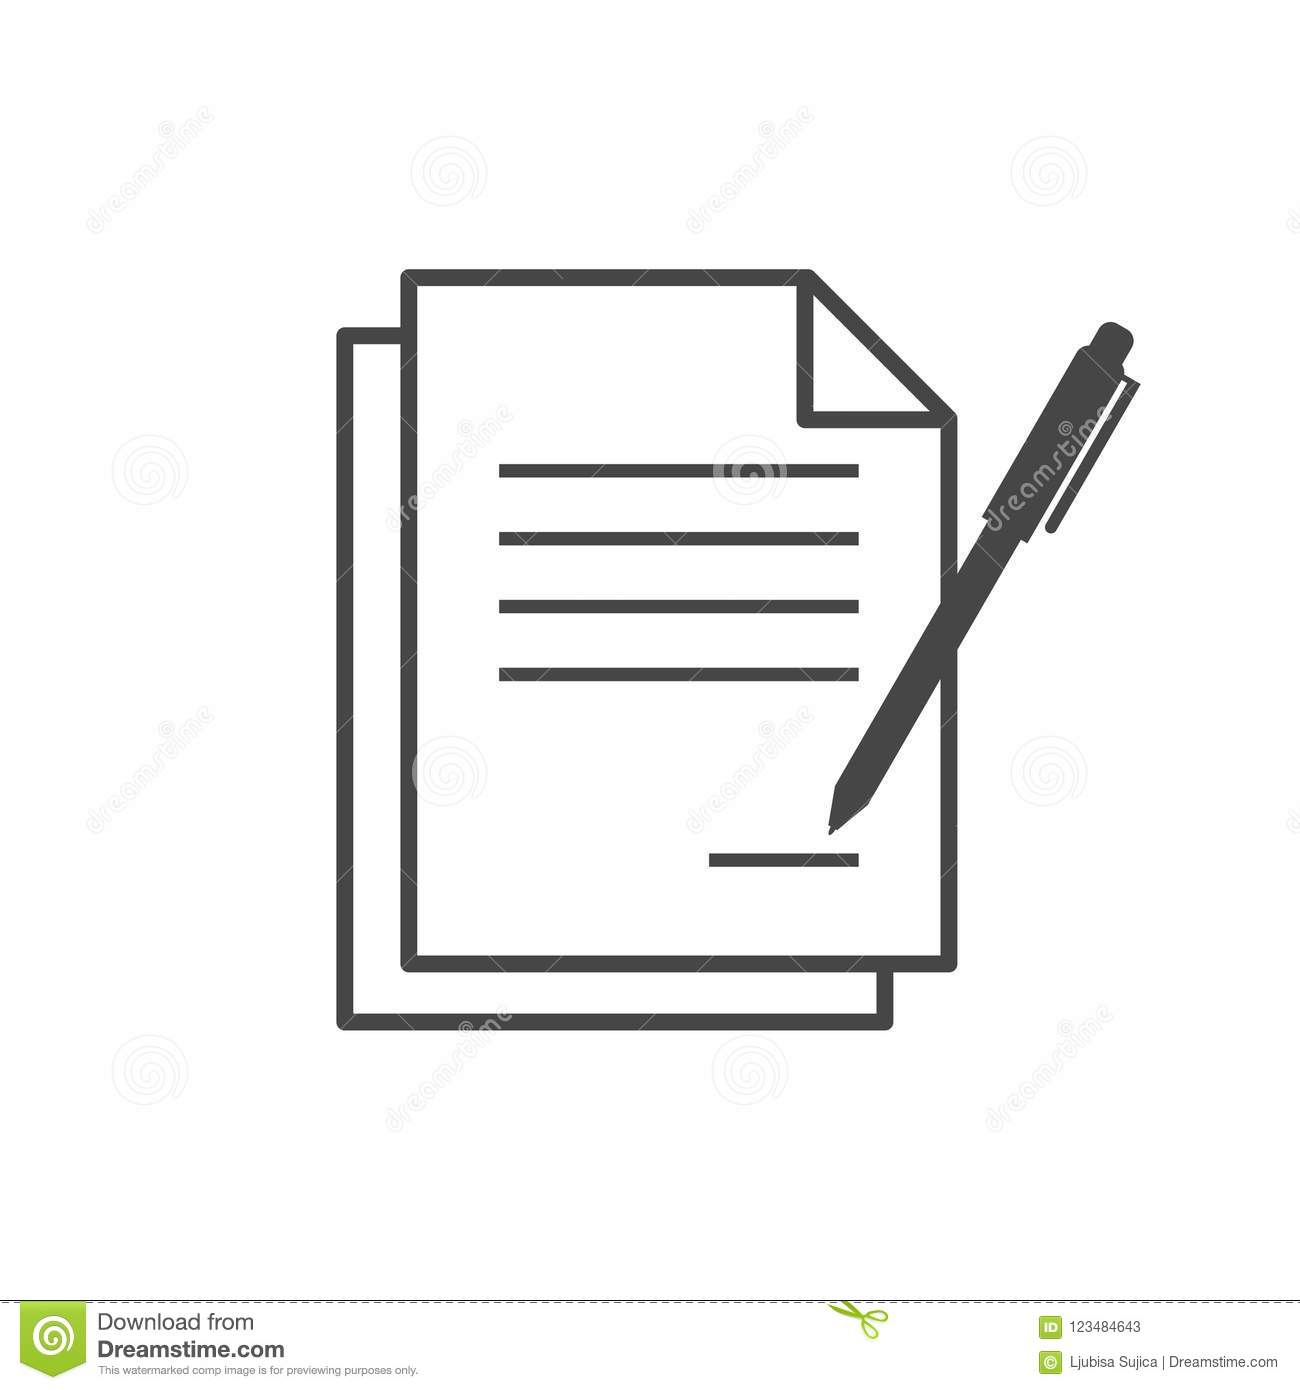 Legal Agreement Contract   Contract Signing Legal Agreement Concept Simple Vector Icon Stock